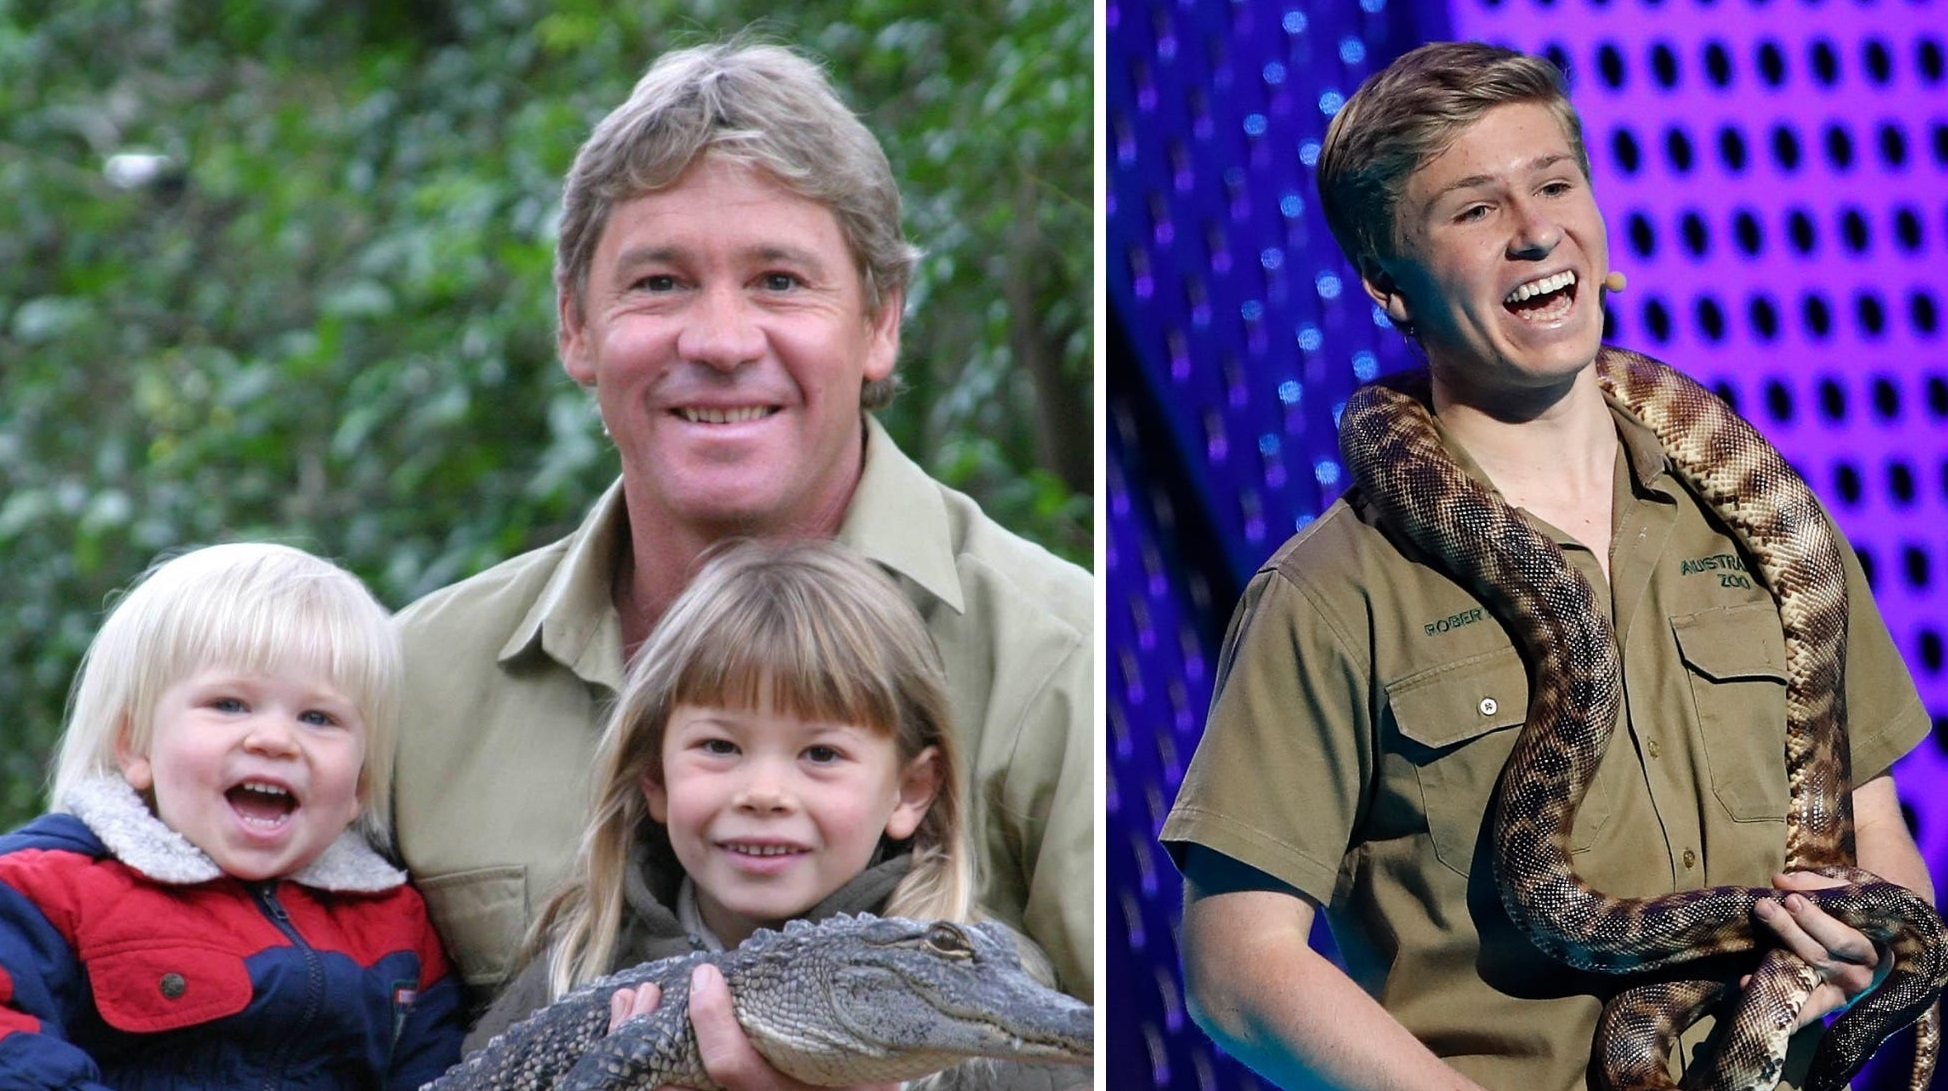 Steve Irwin's son is now a nature photographer and just won an award for his photo of raging bushfire